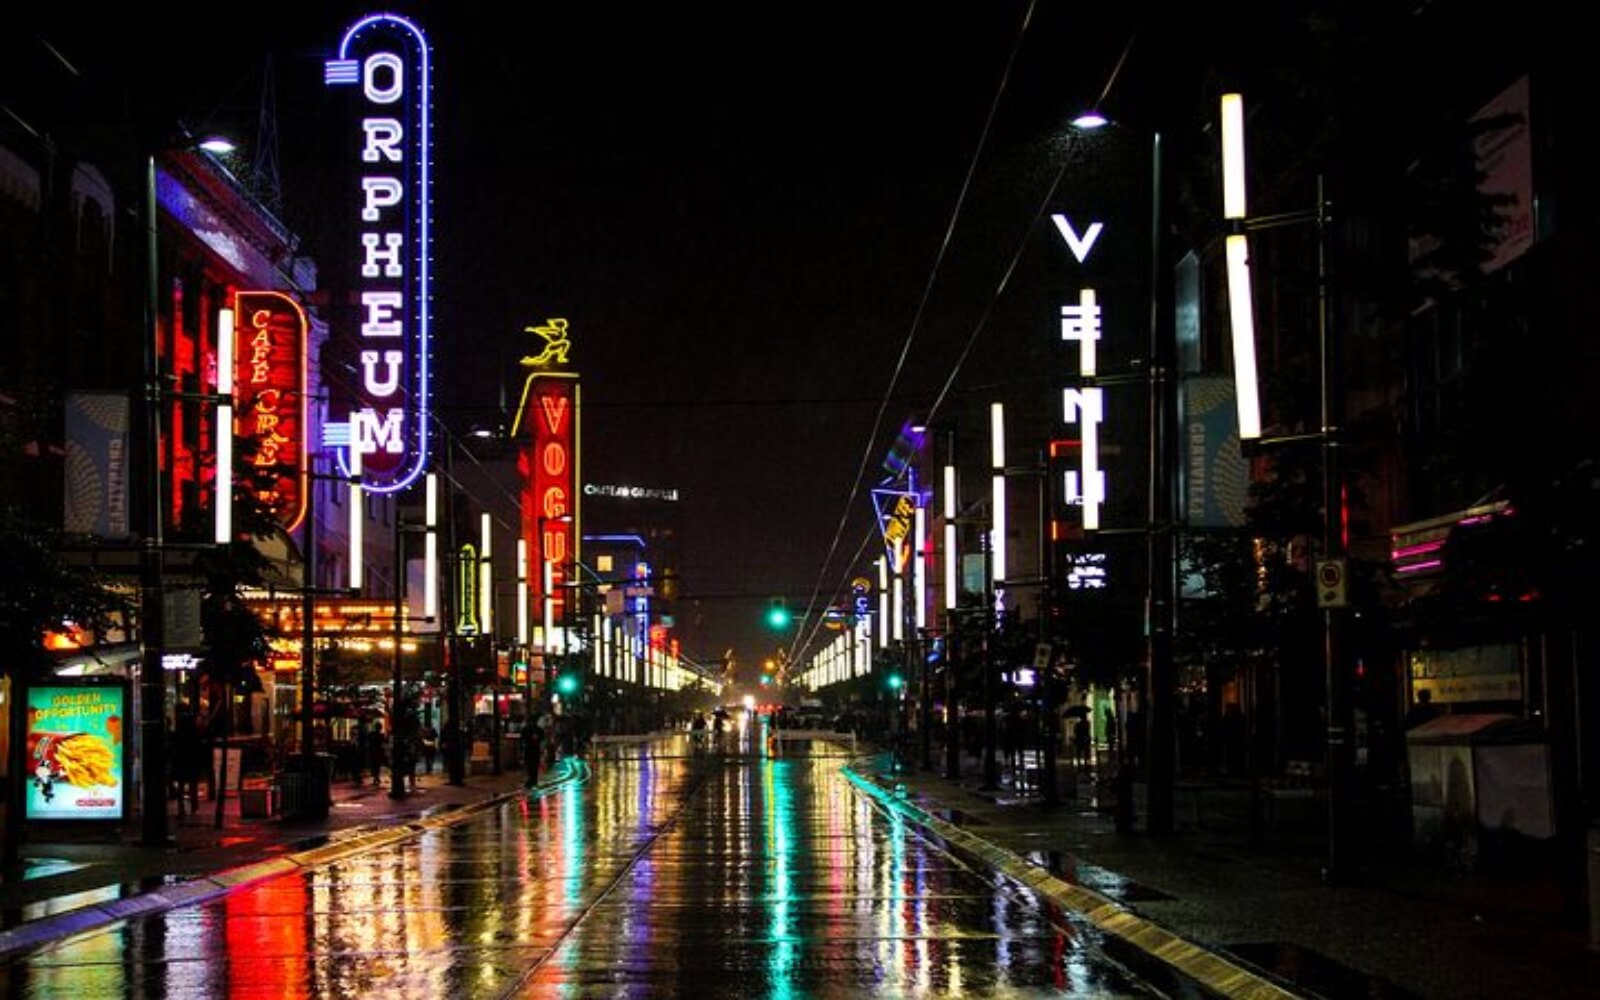 The Granville Strip at night